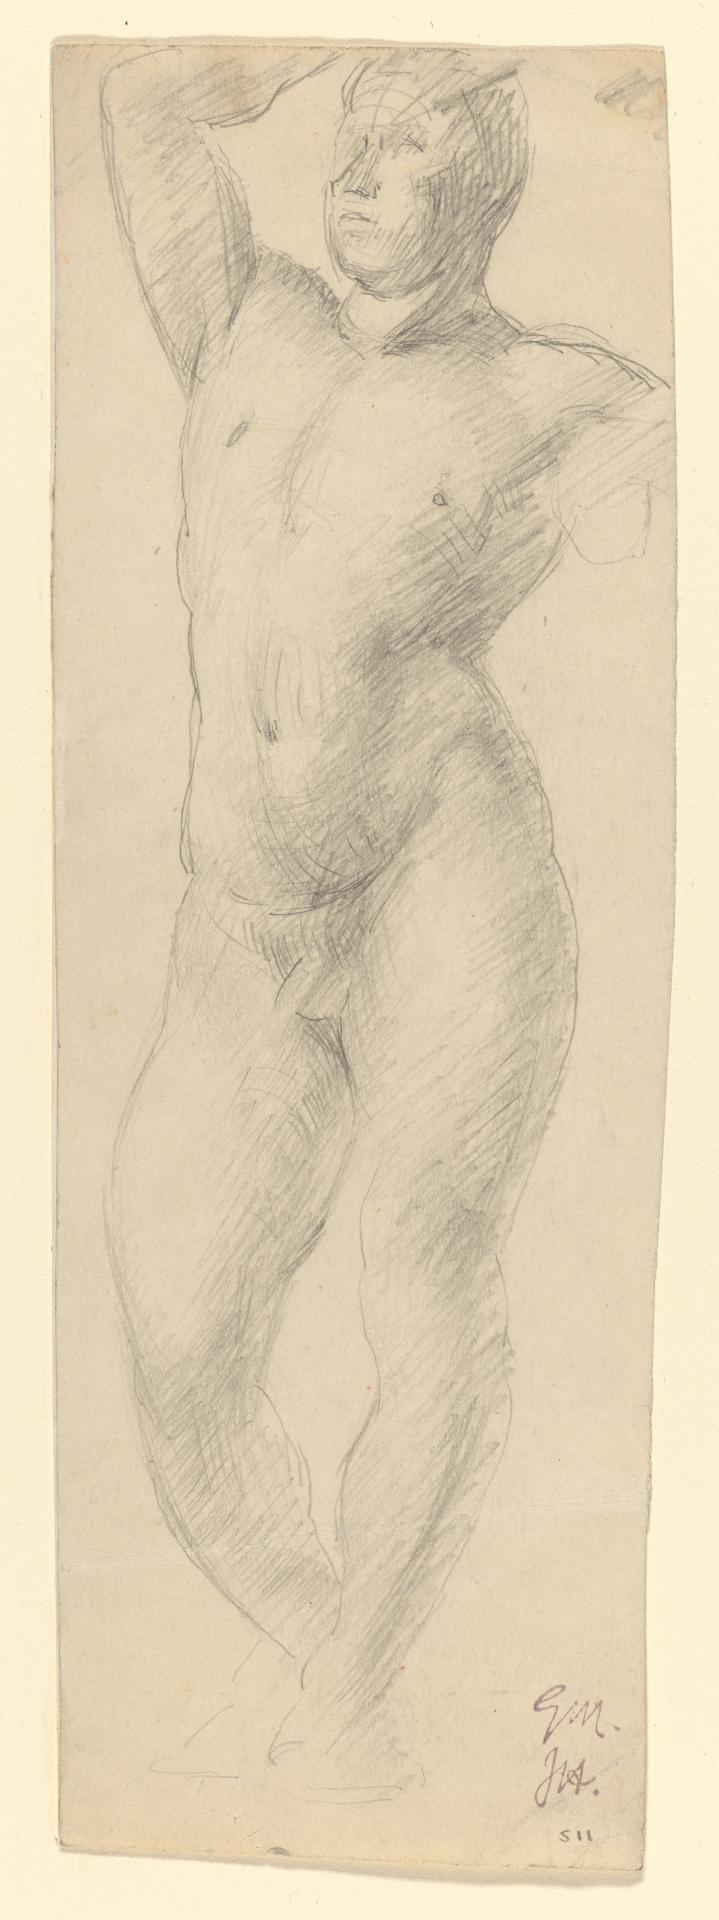 Nude study - standing male